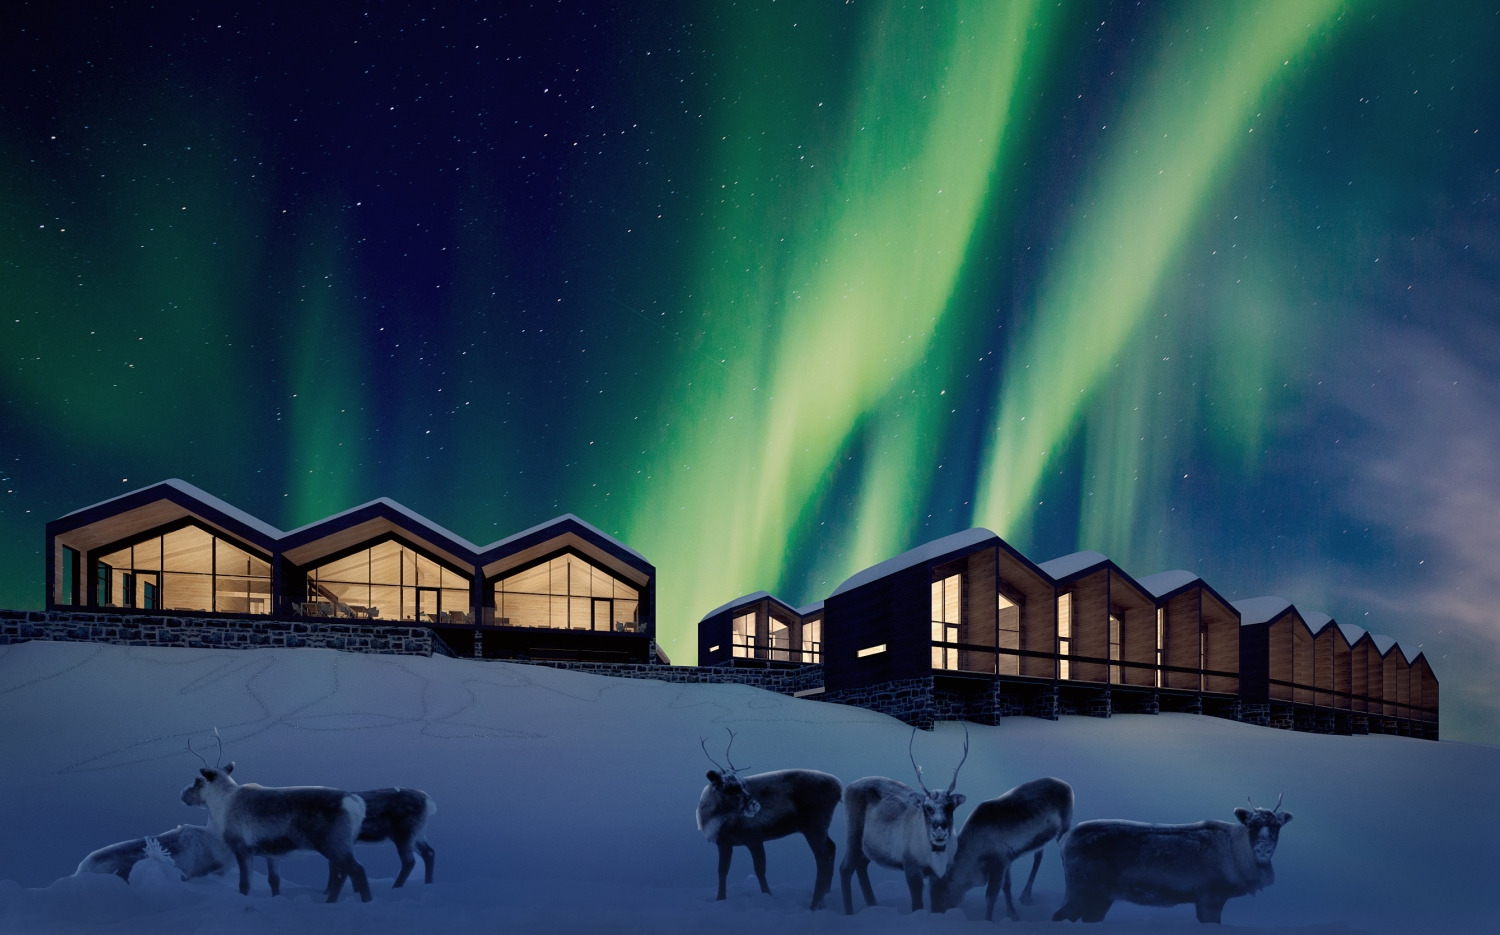 Star Arctic Hotel - Exterior view at night (artist's impression)